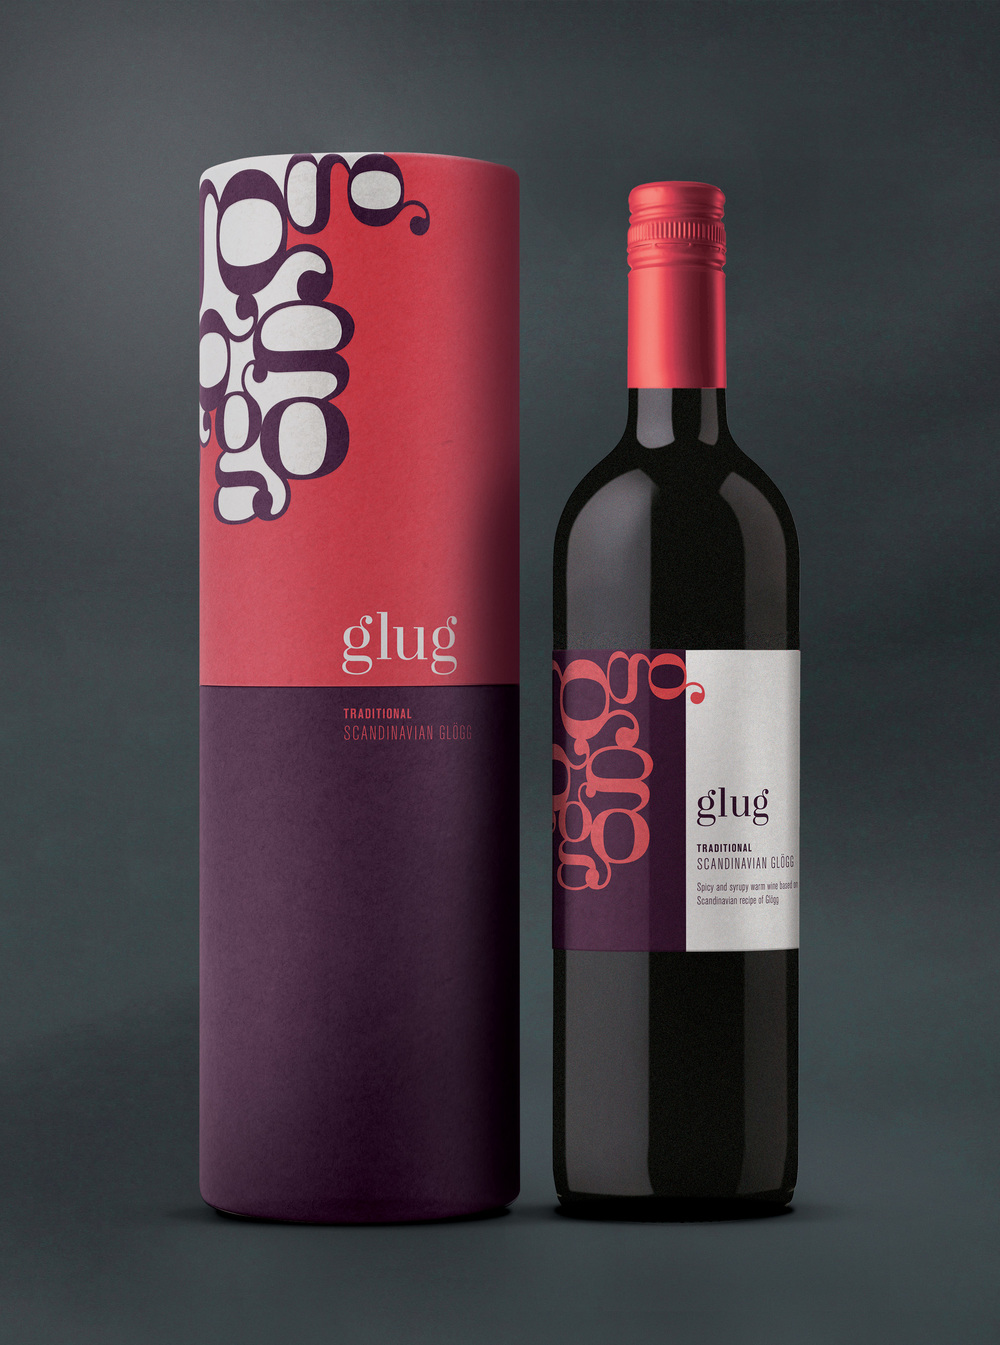 Wine label design, branding and packaging design by Our Revolution